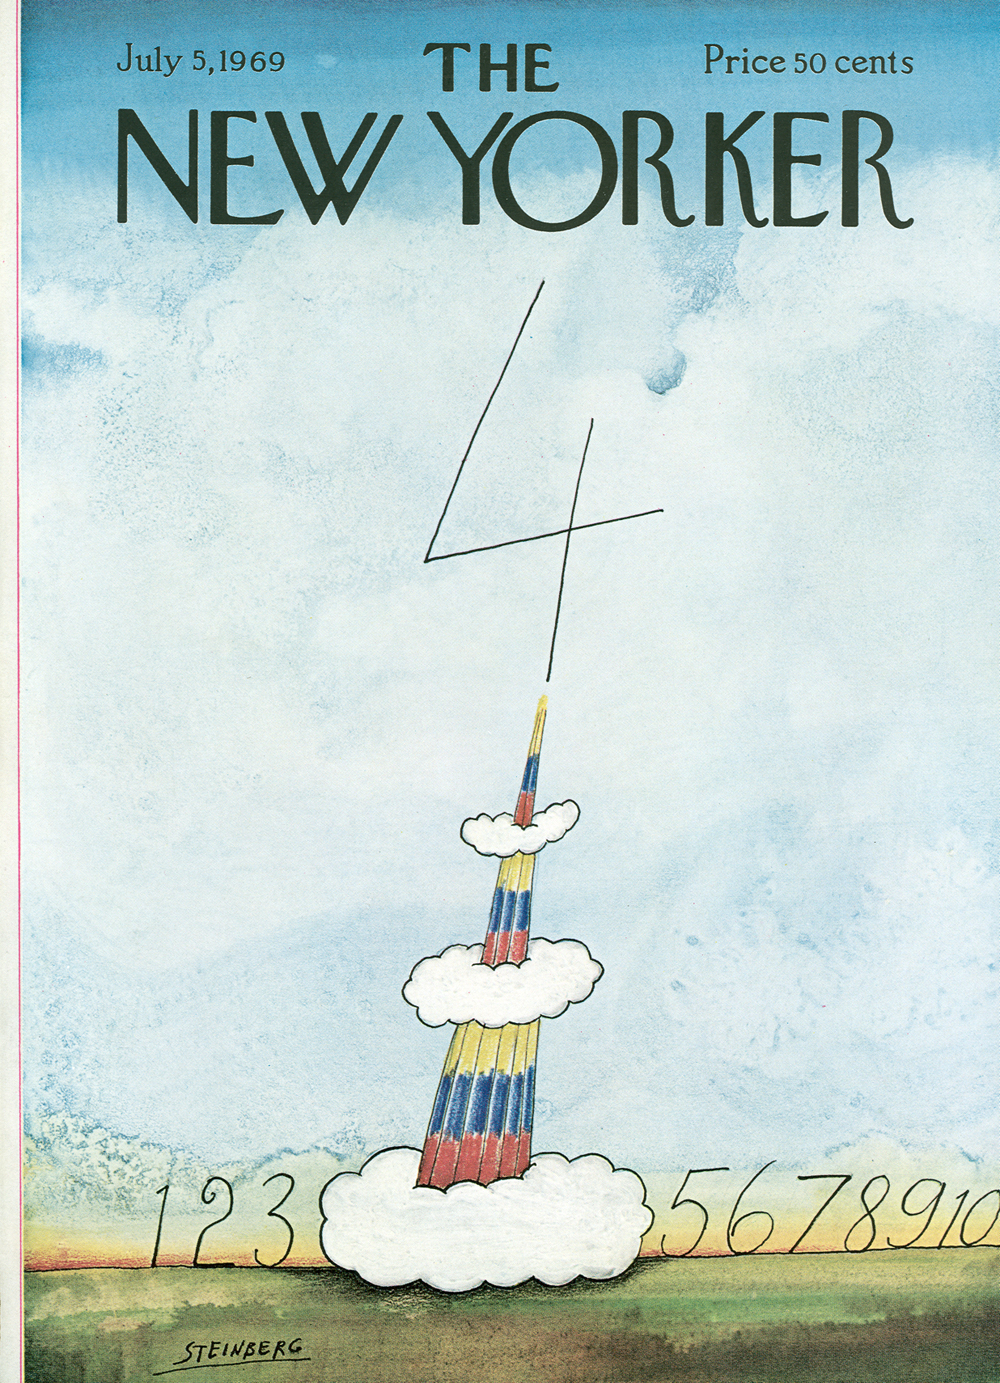 lastly i liked steinbergs illustration on the cover of the july 22nd 1972 issue of the new yorker the cover leaves me thinking why do i find this